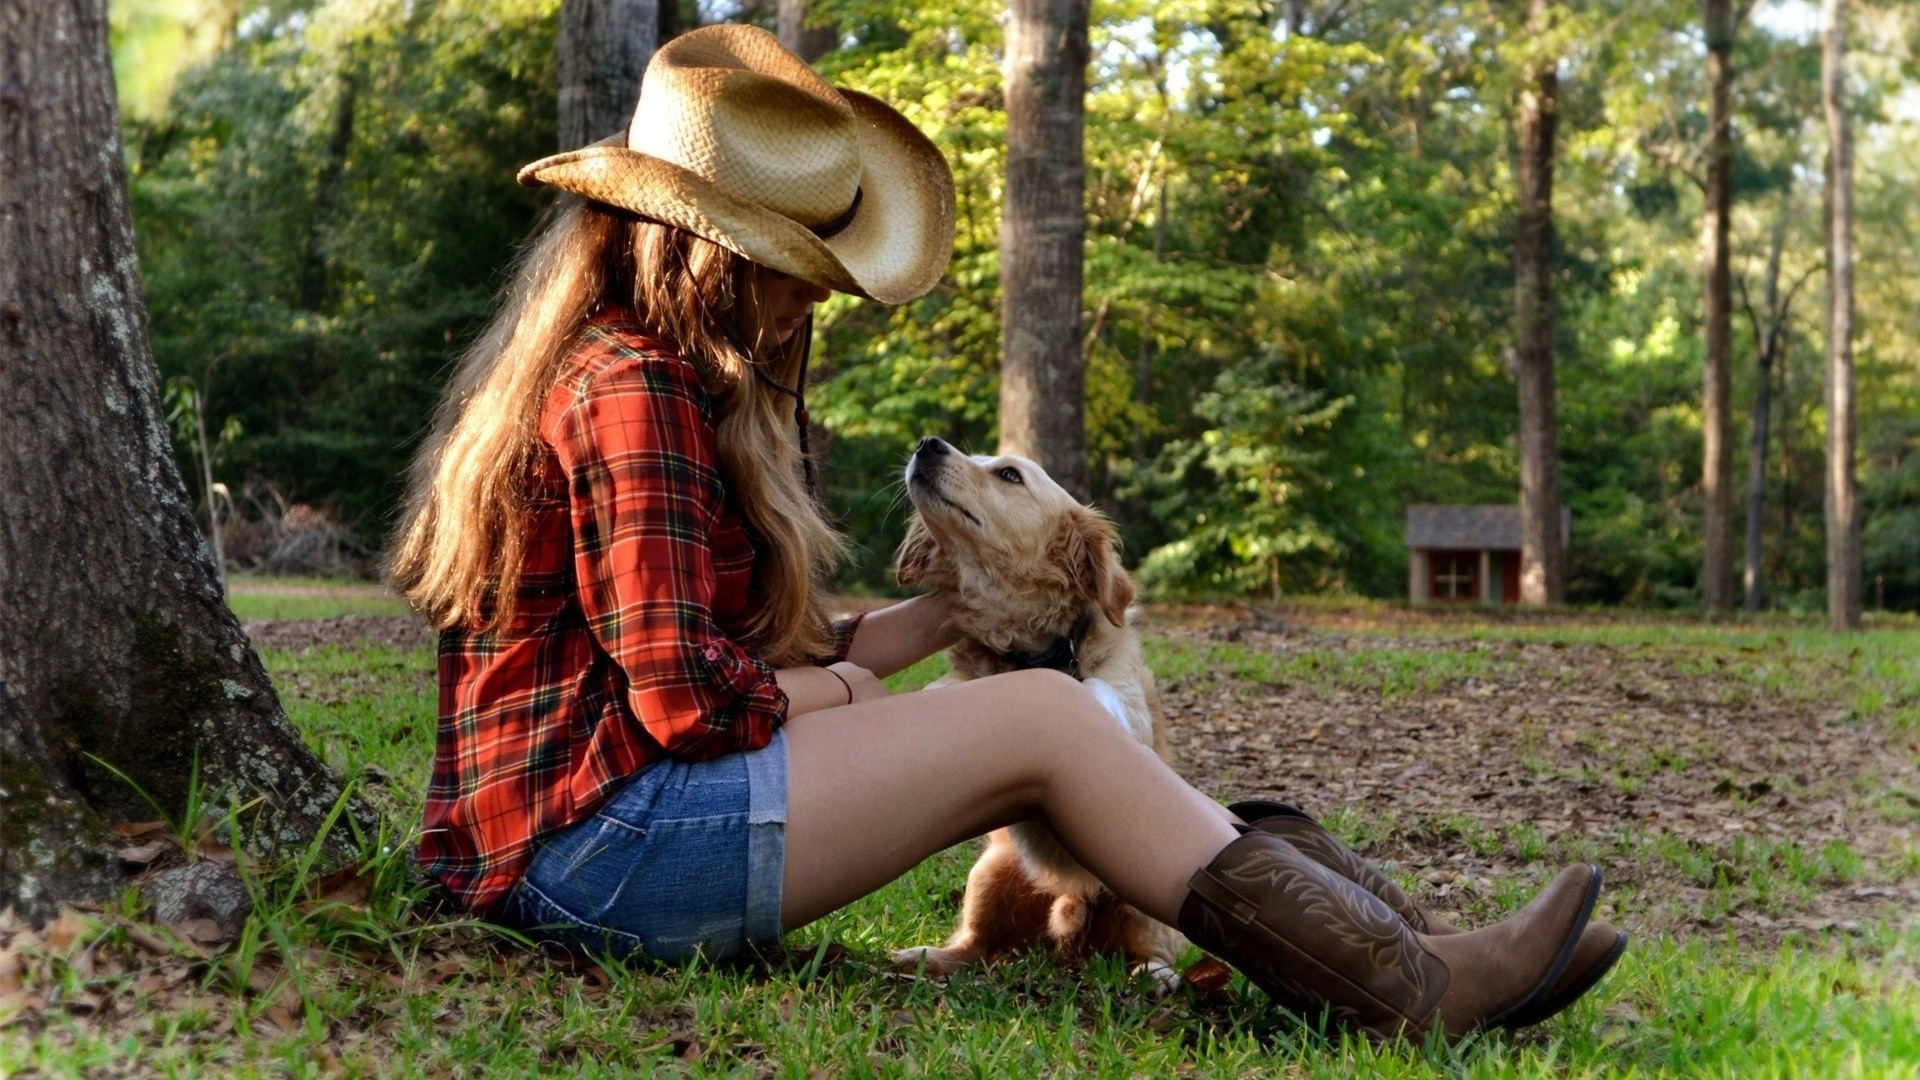 Country Girl a wallpaper